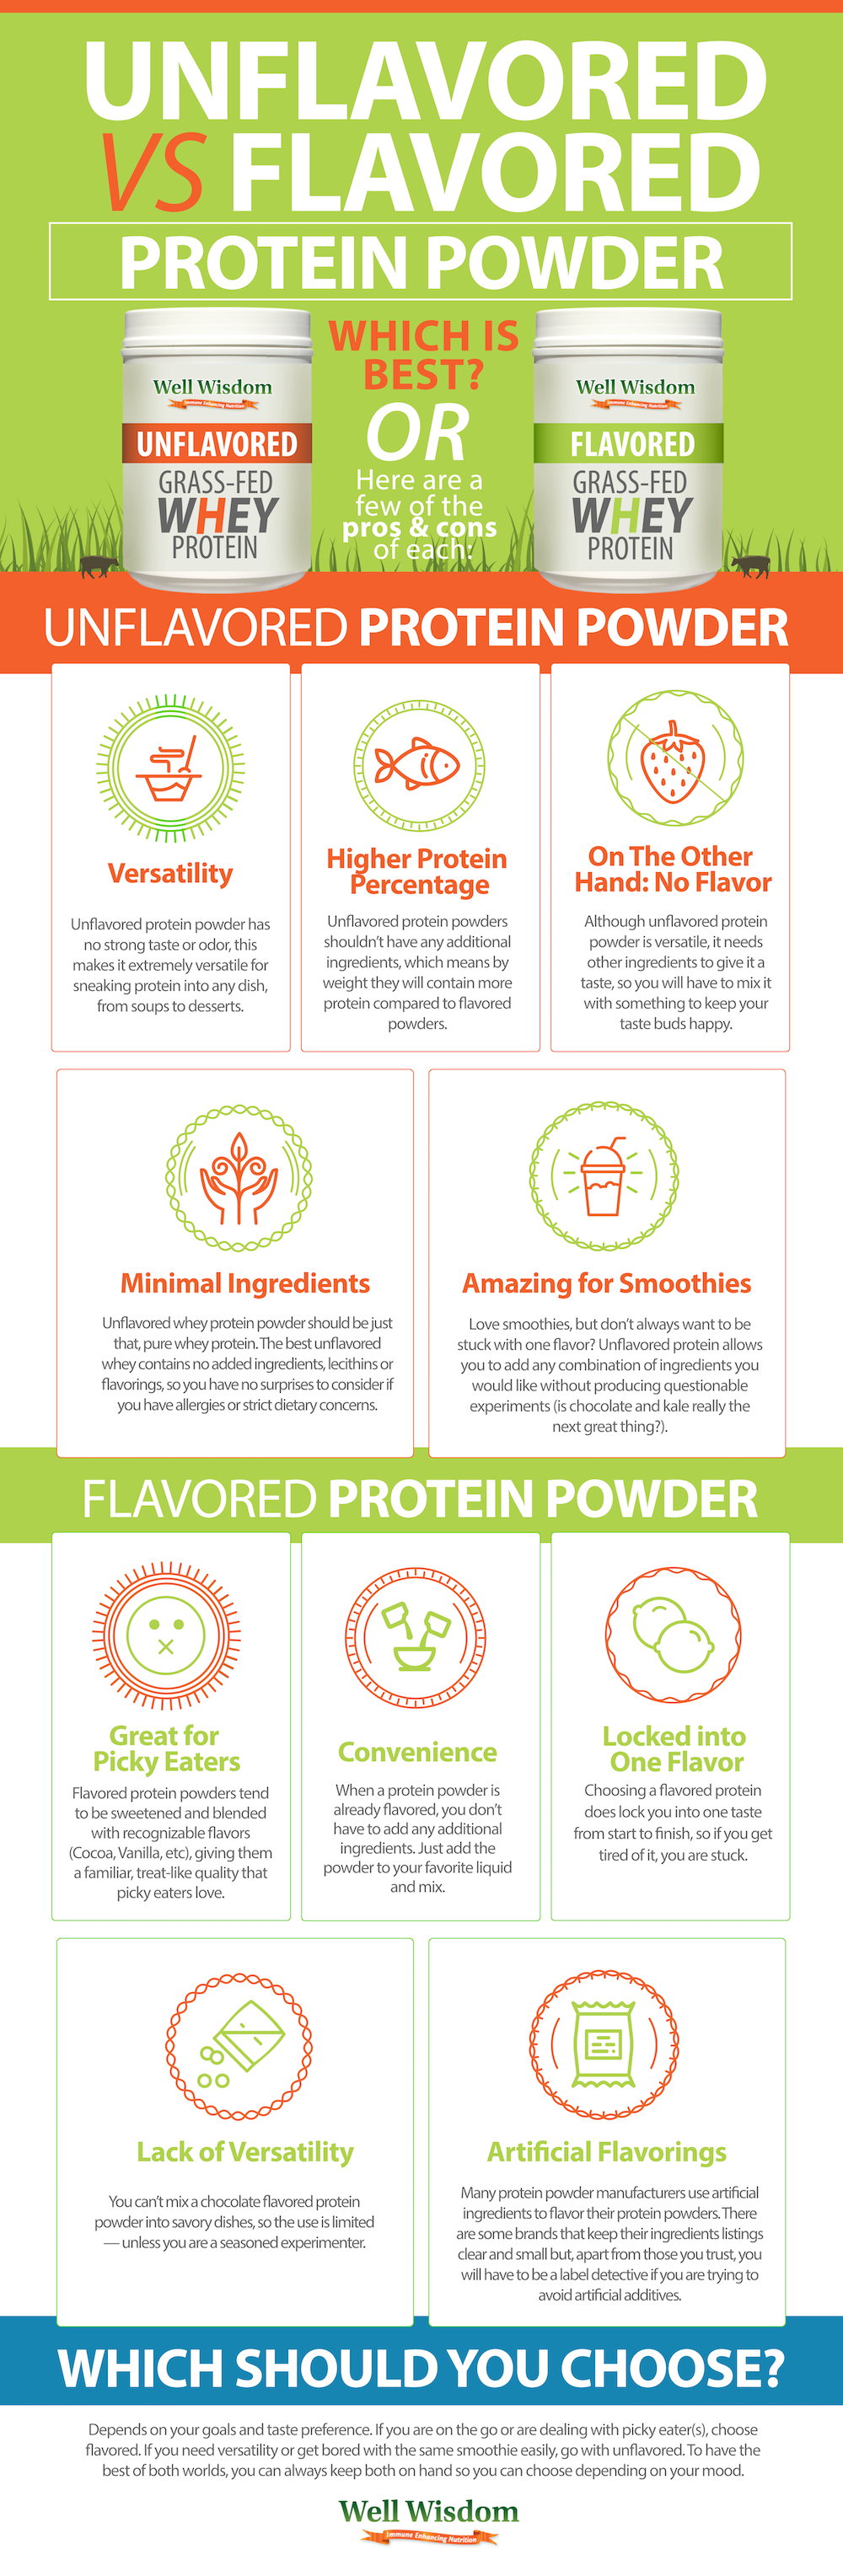 Unflavored vs Flavored Protein Powder